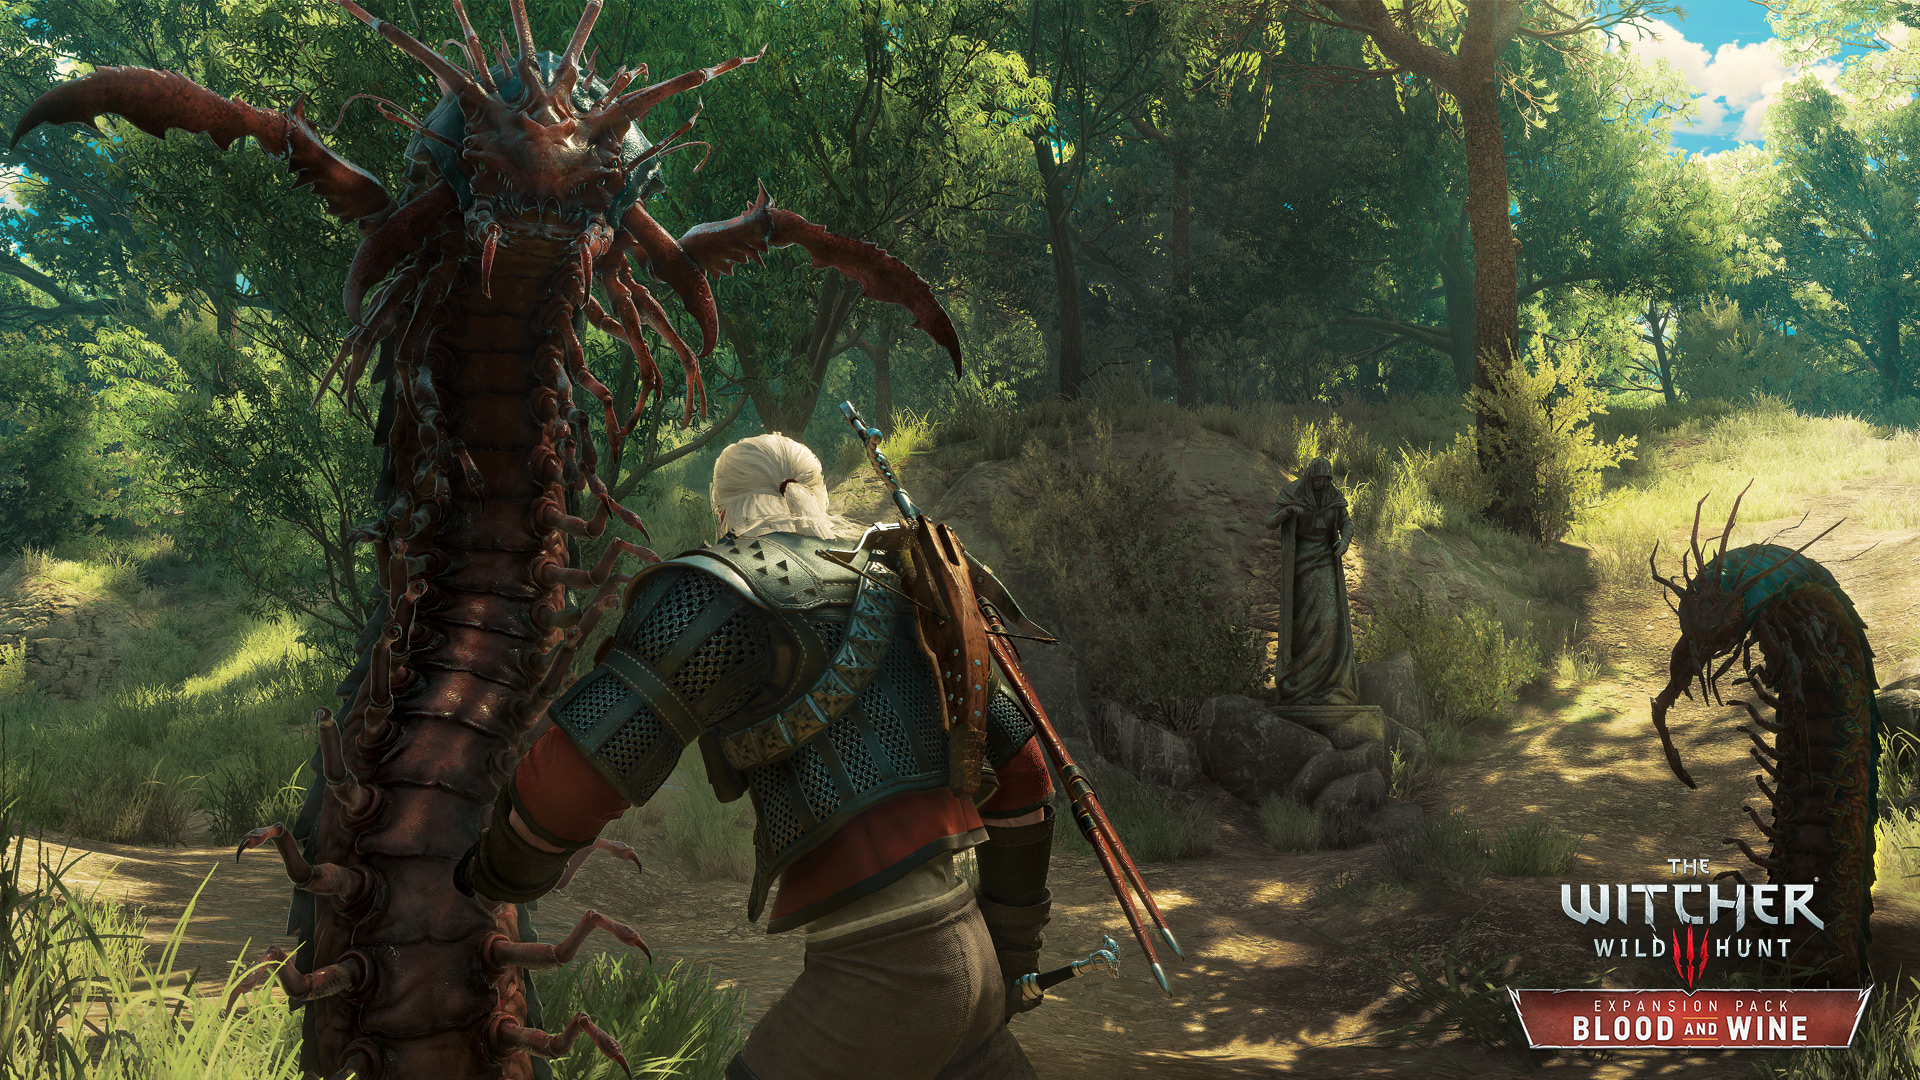 the witcher 3 blood and wine gameplay - devgam.com